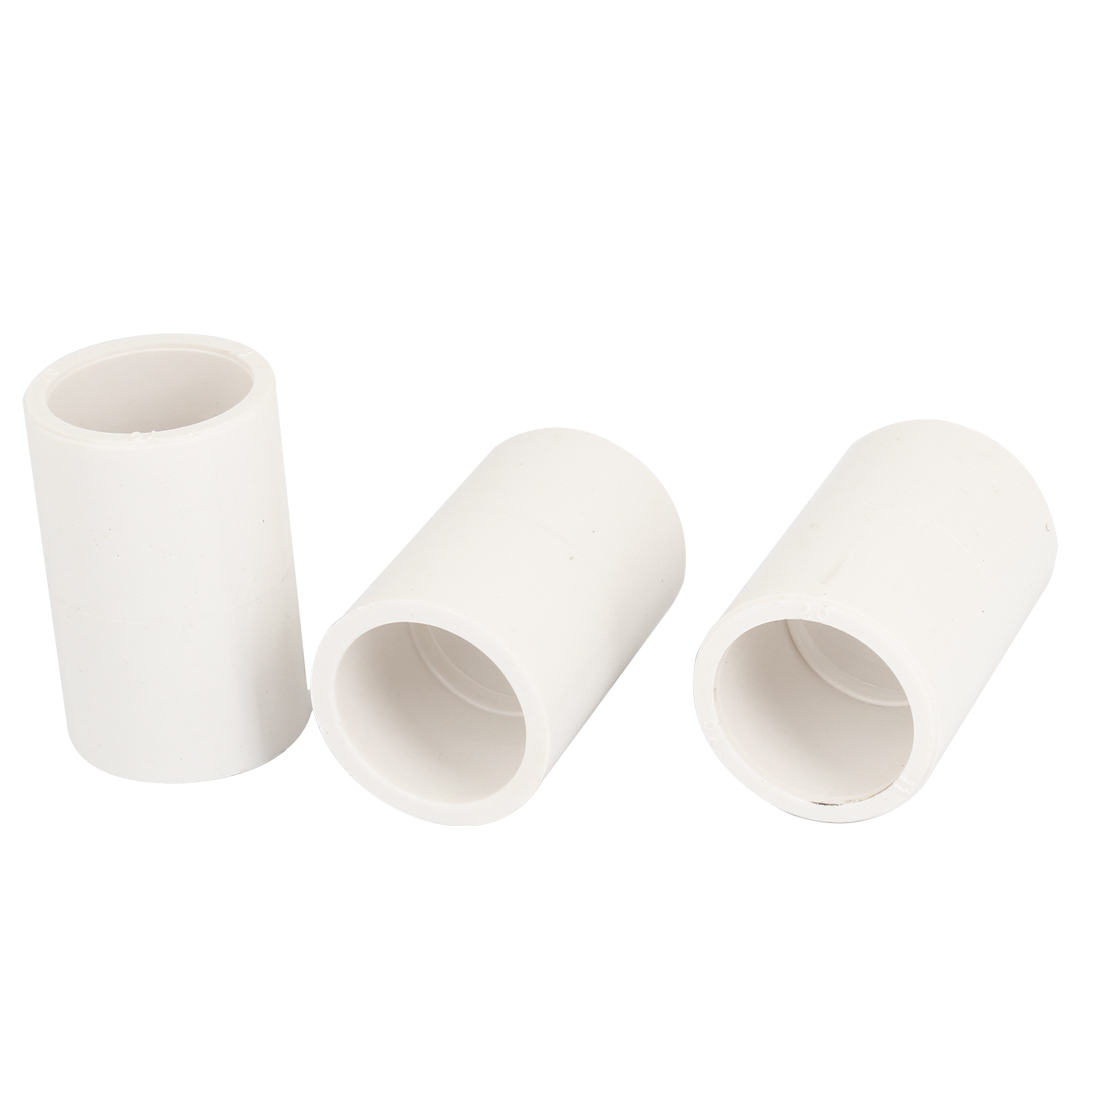 20mm Inner Diameter PVC Straight Pipe Tube Connector Fittings White 3 Pcs